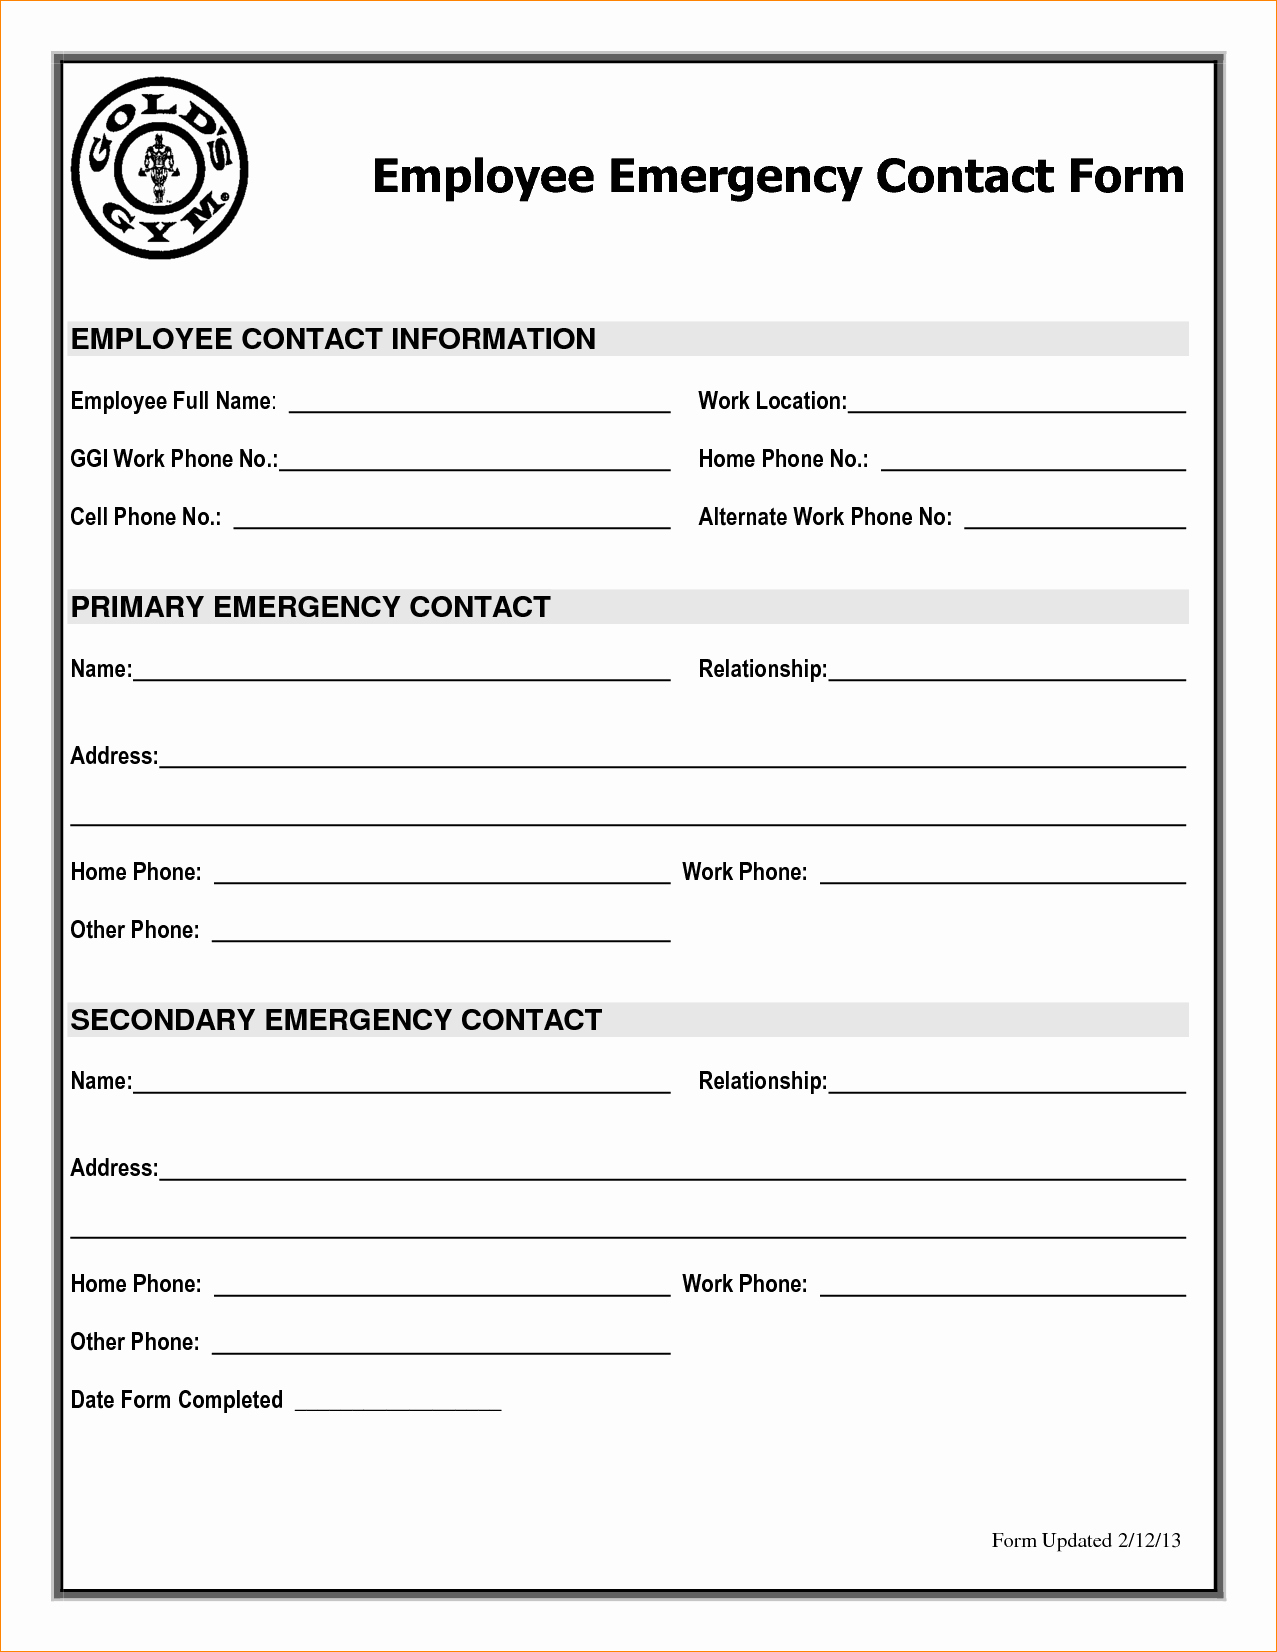 Employee Emergency Contact form Template Unique 5 Emergency Contact form Template